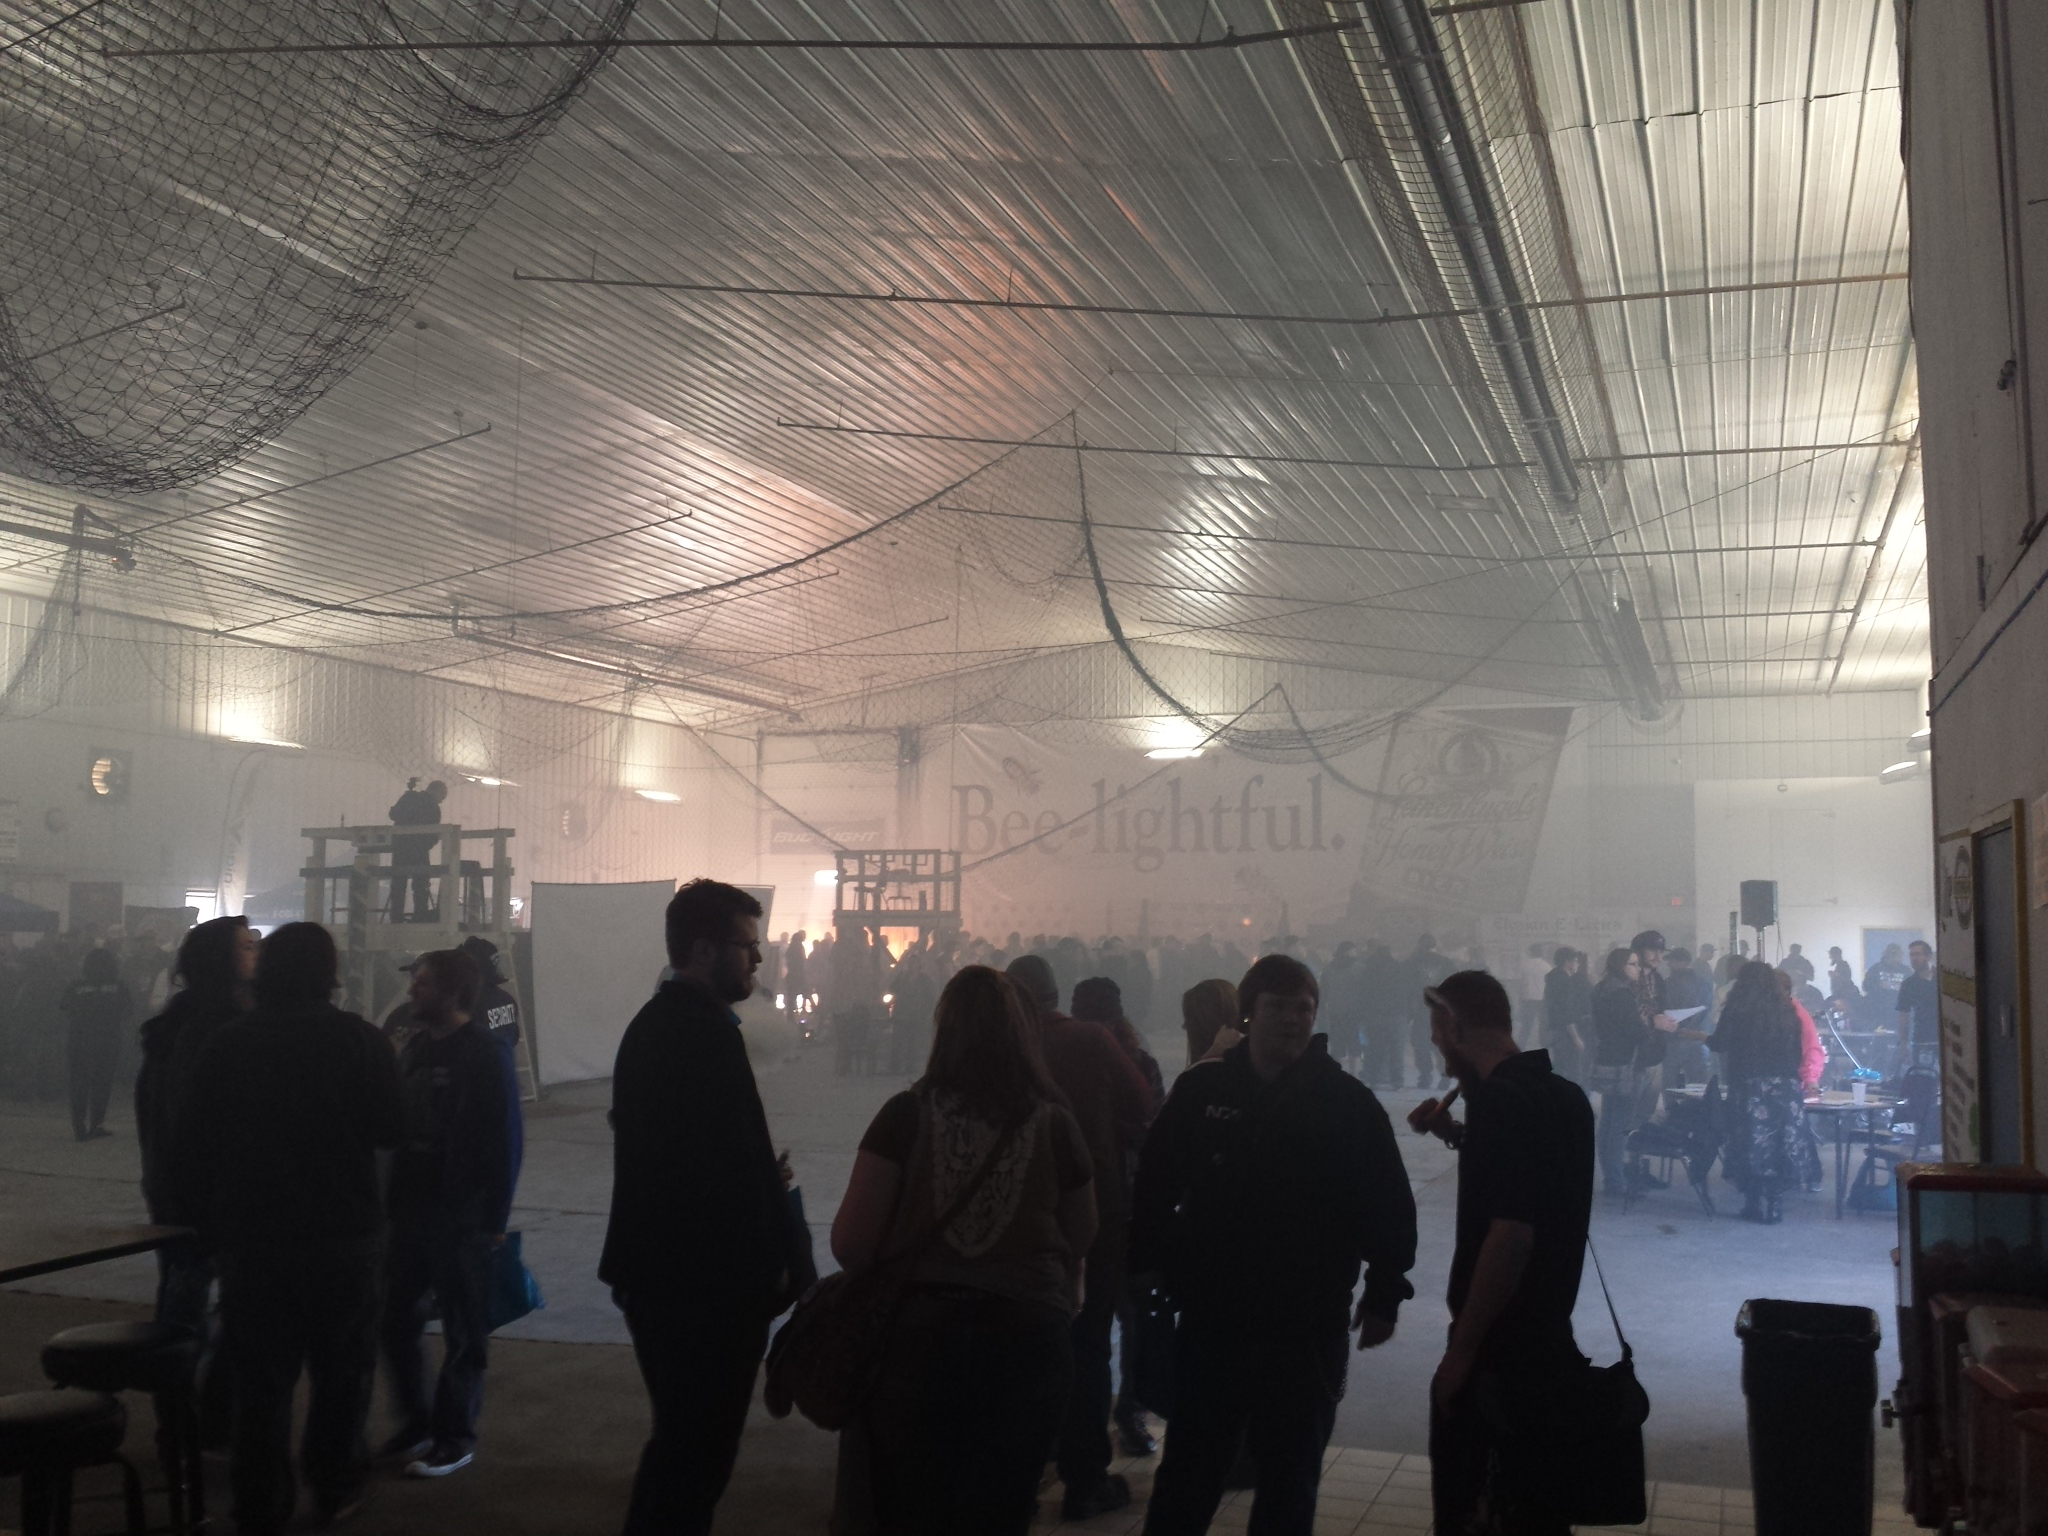 20 Minutes into the Vaping Convention.